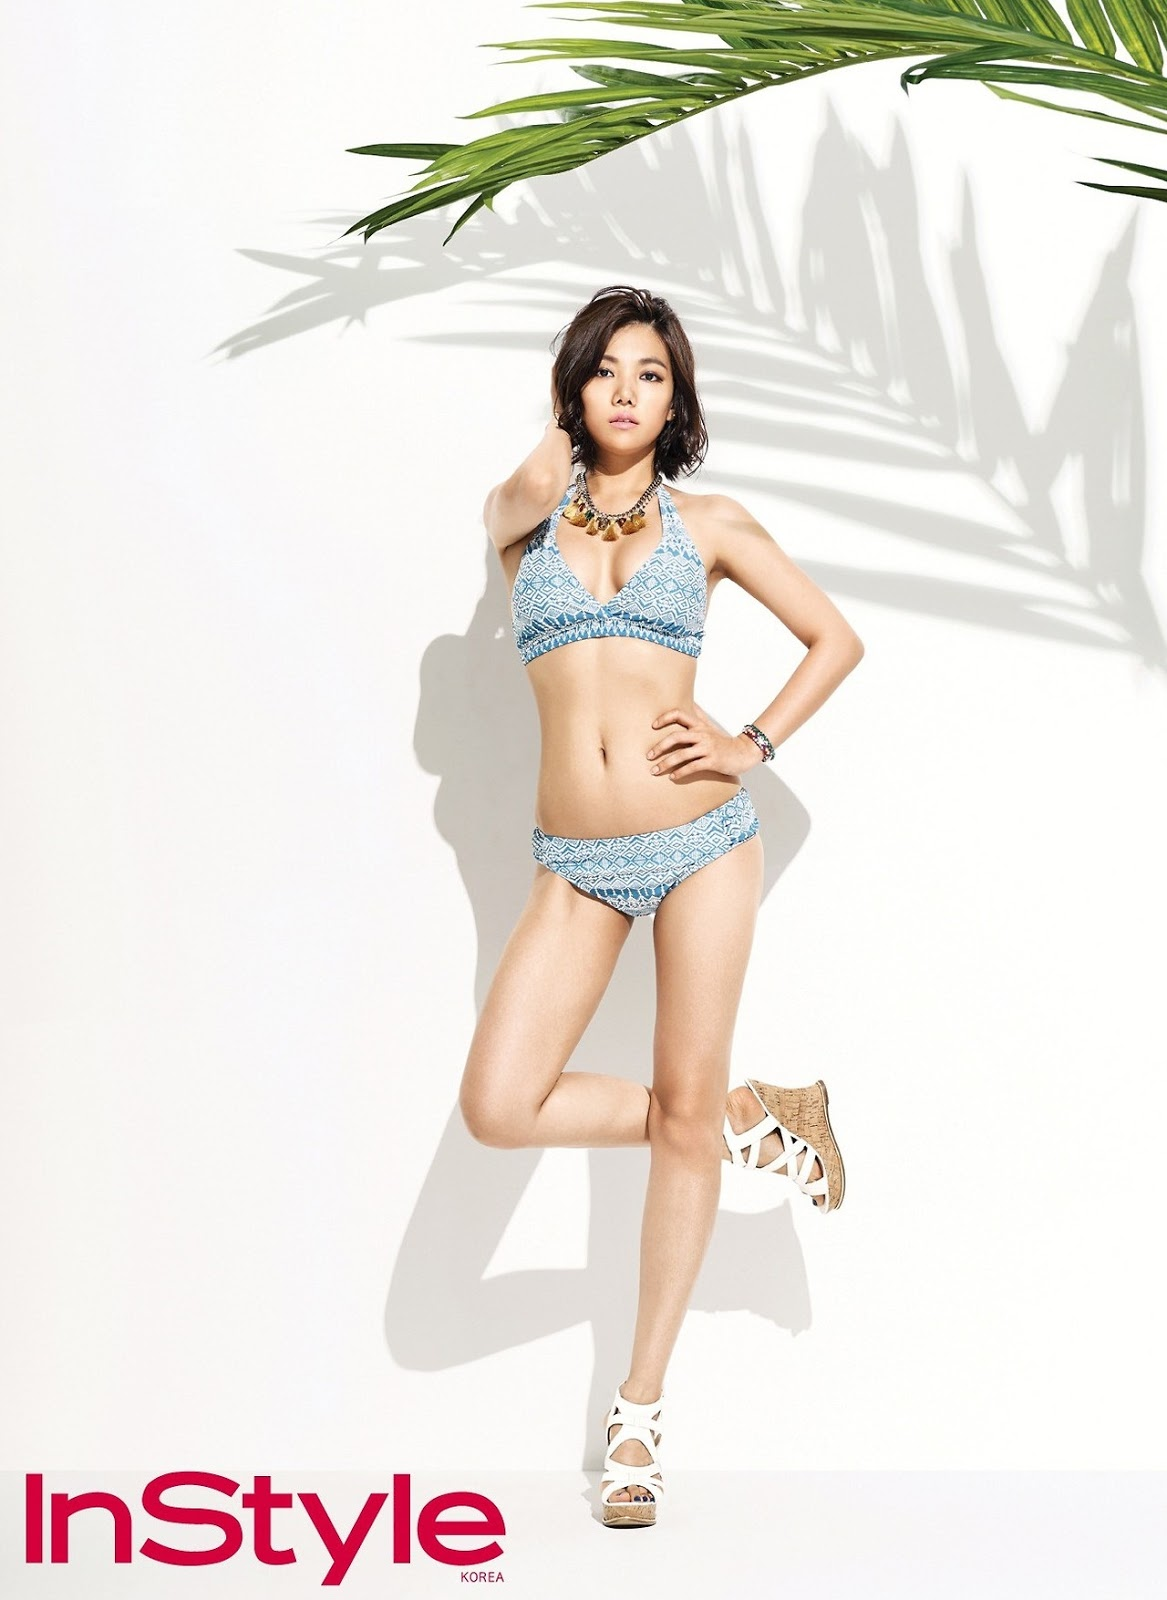 [EYE CANDY] 9 Sexiest Photos Of Actress Lee Chae Young